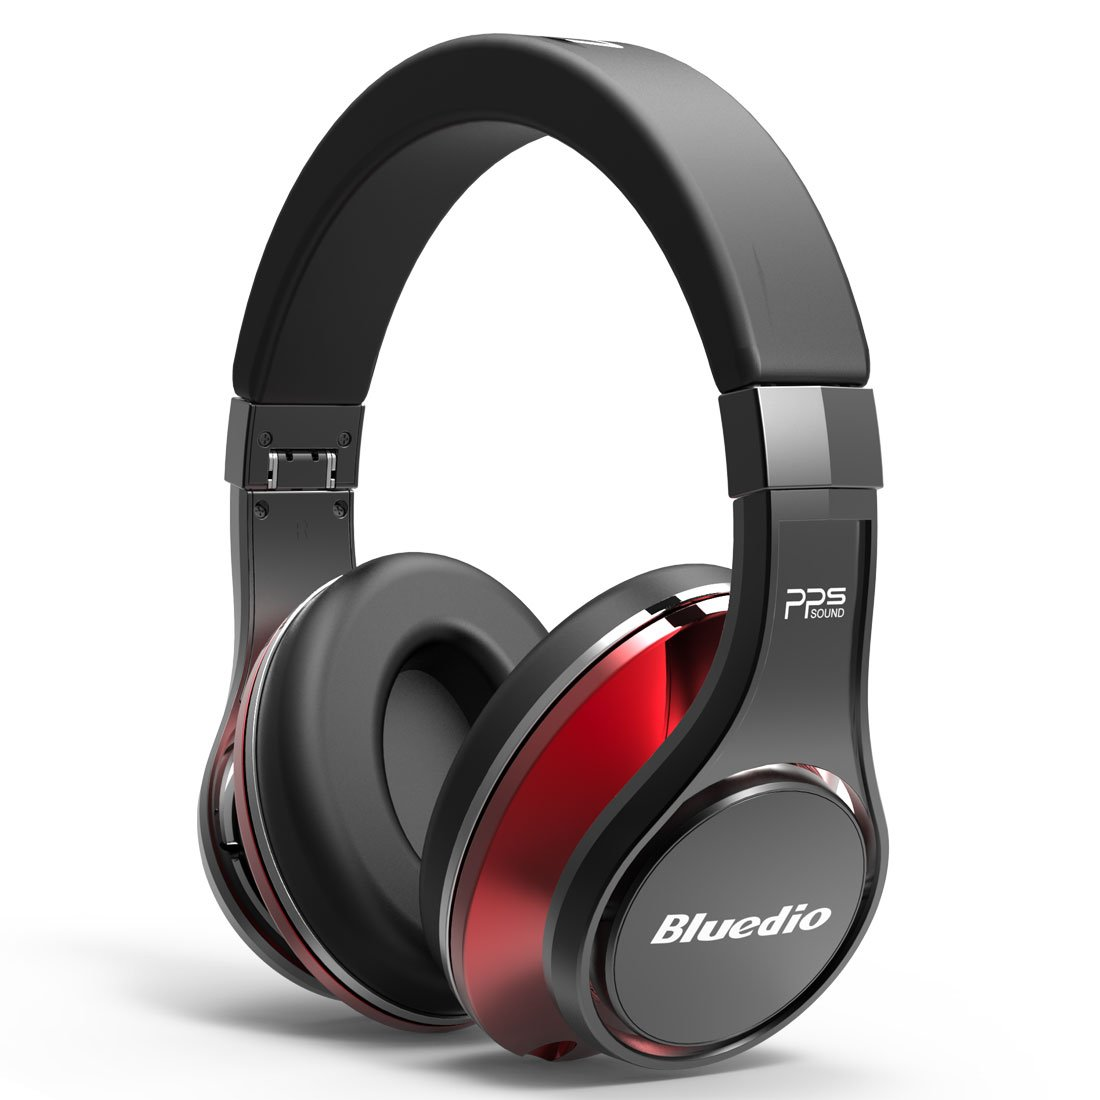 Bluedio U (UFO) PPS 8 Drivers High-End Bluetooth headphones Revolution/3D Sound Effect/Aluminum alloy build/Hi-Fi Rank wireless&wired Over-Ear headsets with carrying hard case Gift (Black and Red) by Bluedio